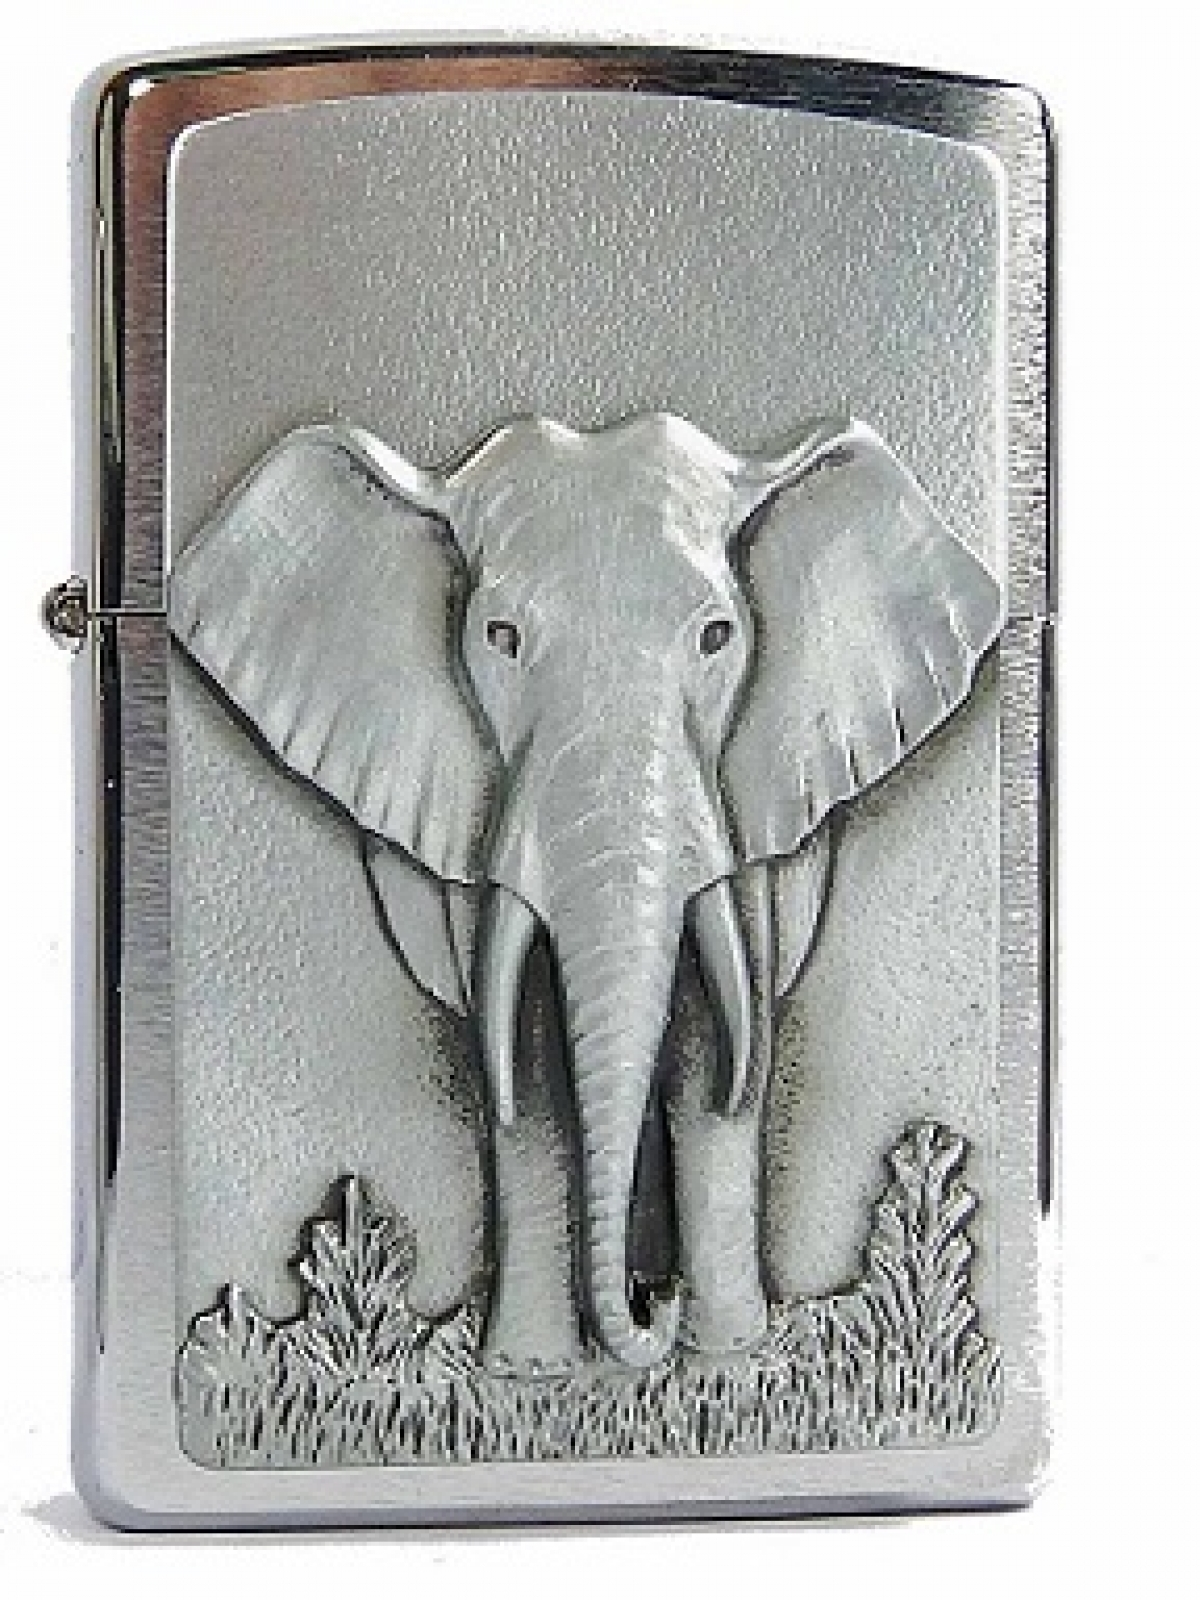 Zippo Lighter Elephant Limited Edition in Mirror Box